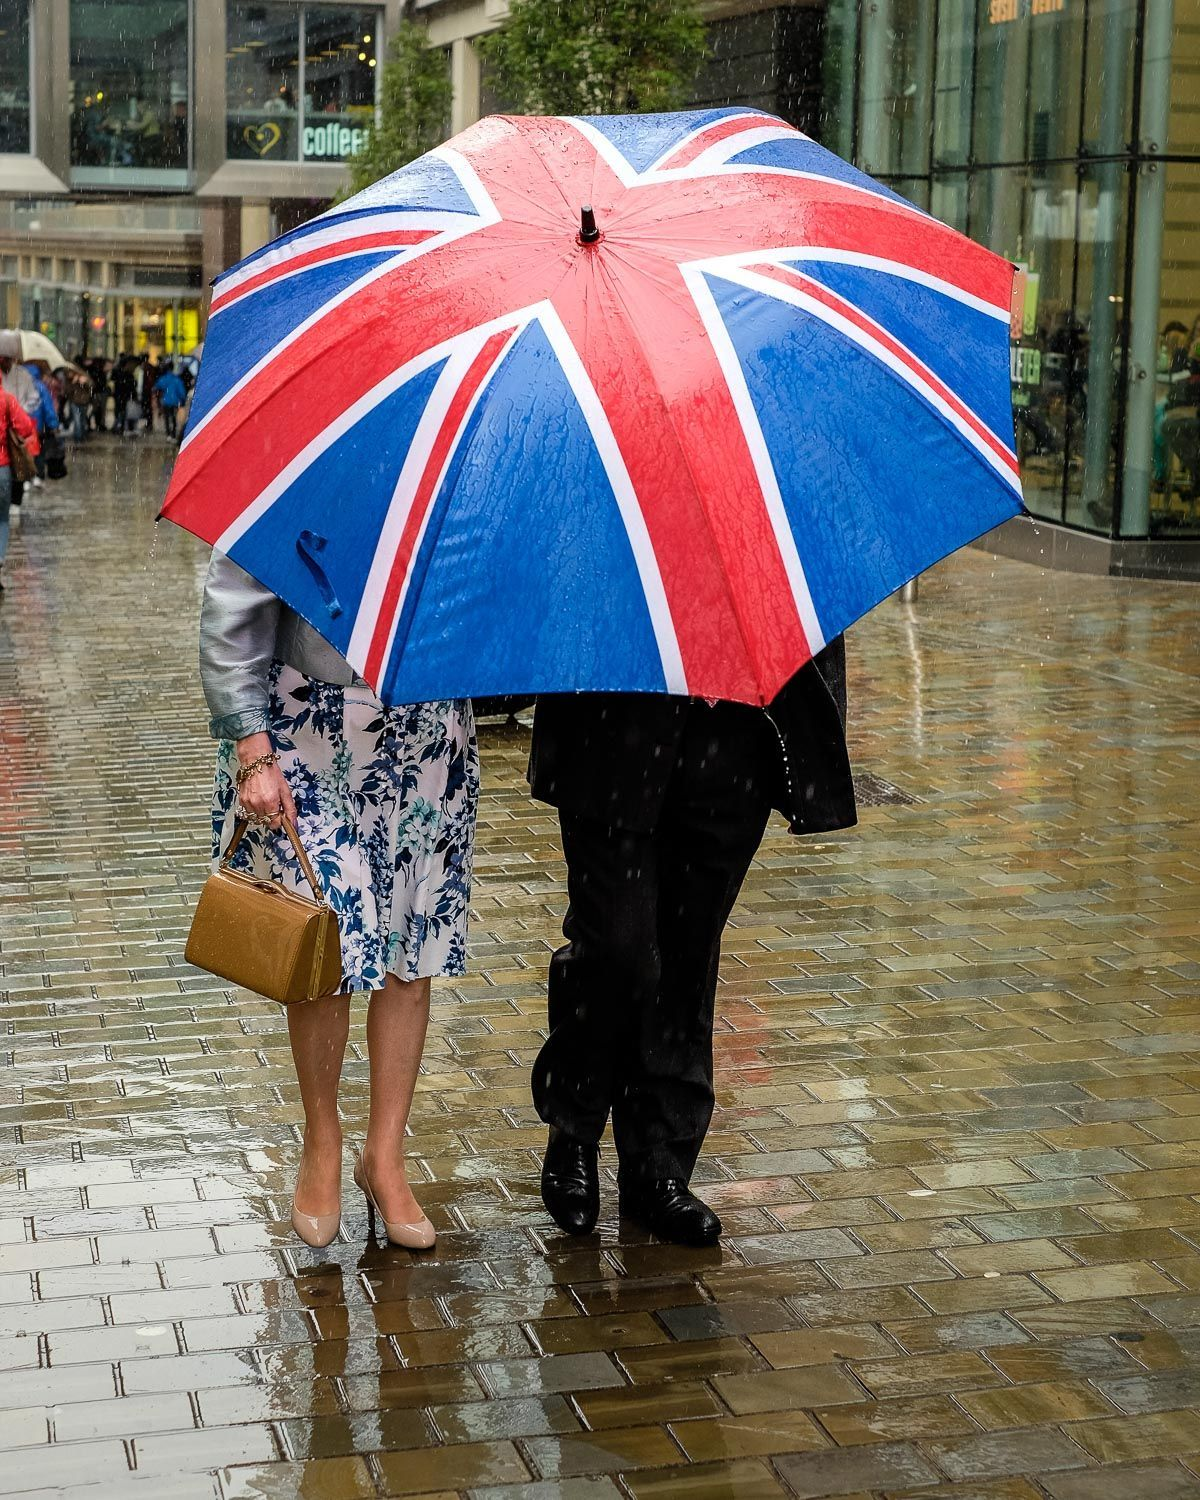 street photo of couple obscured by large union flag umbrella